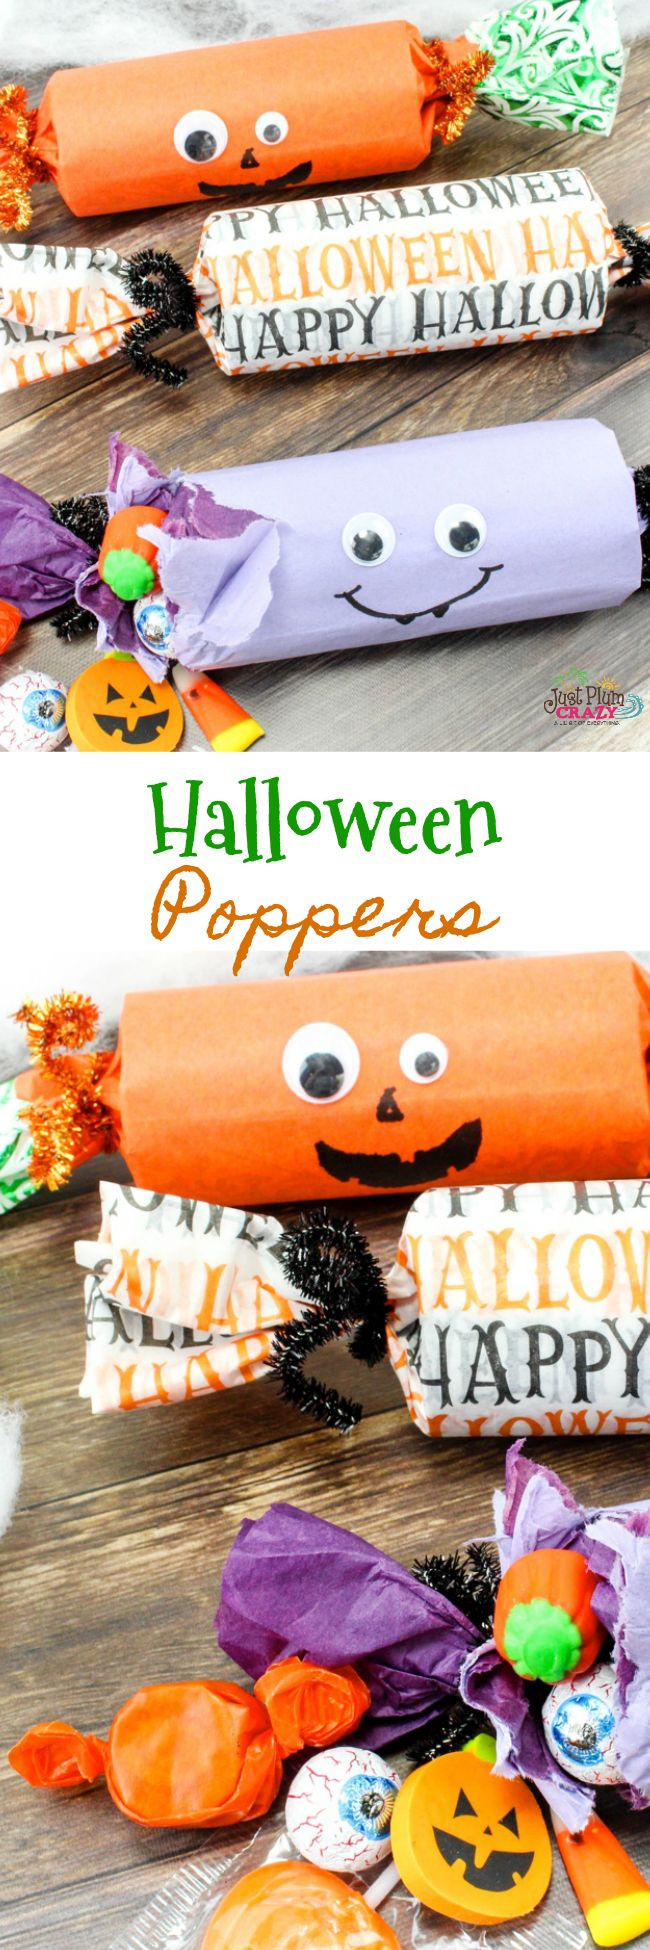 360 best Kids - Halloween Ideas images on Pinterest Halloween kid - Kids Halloween Decorations